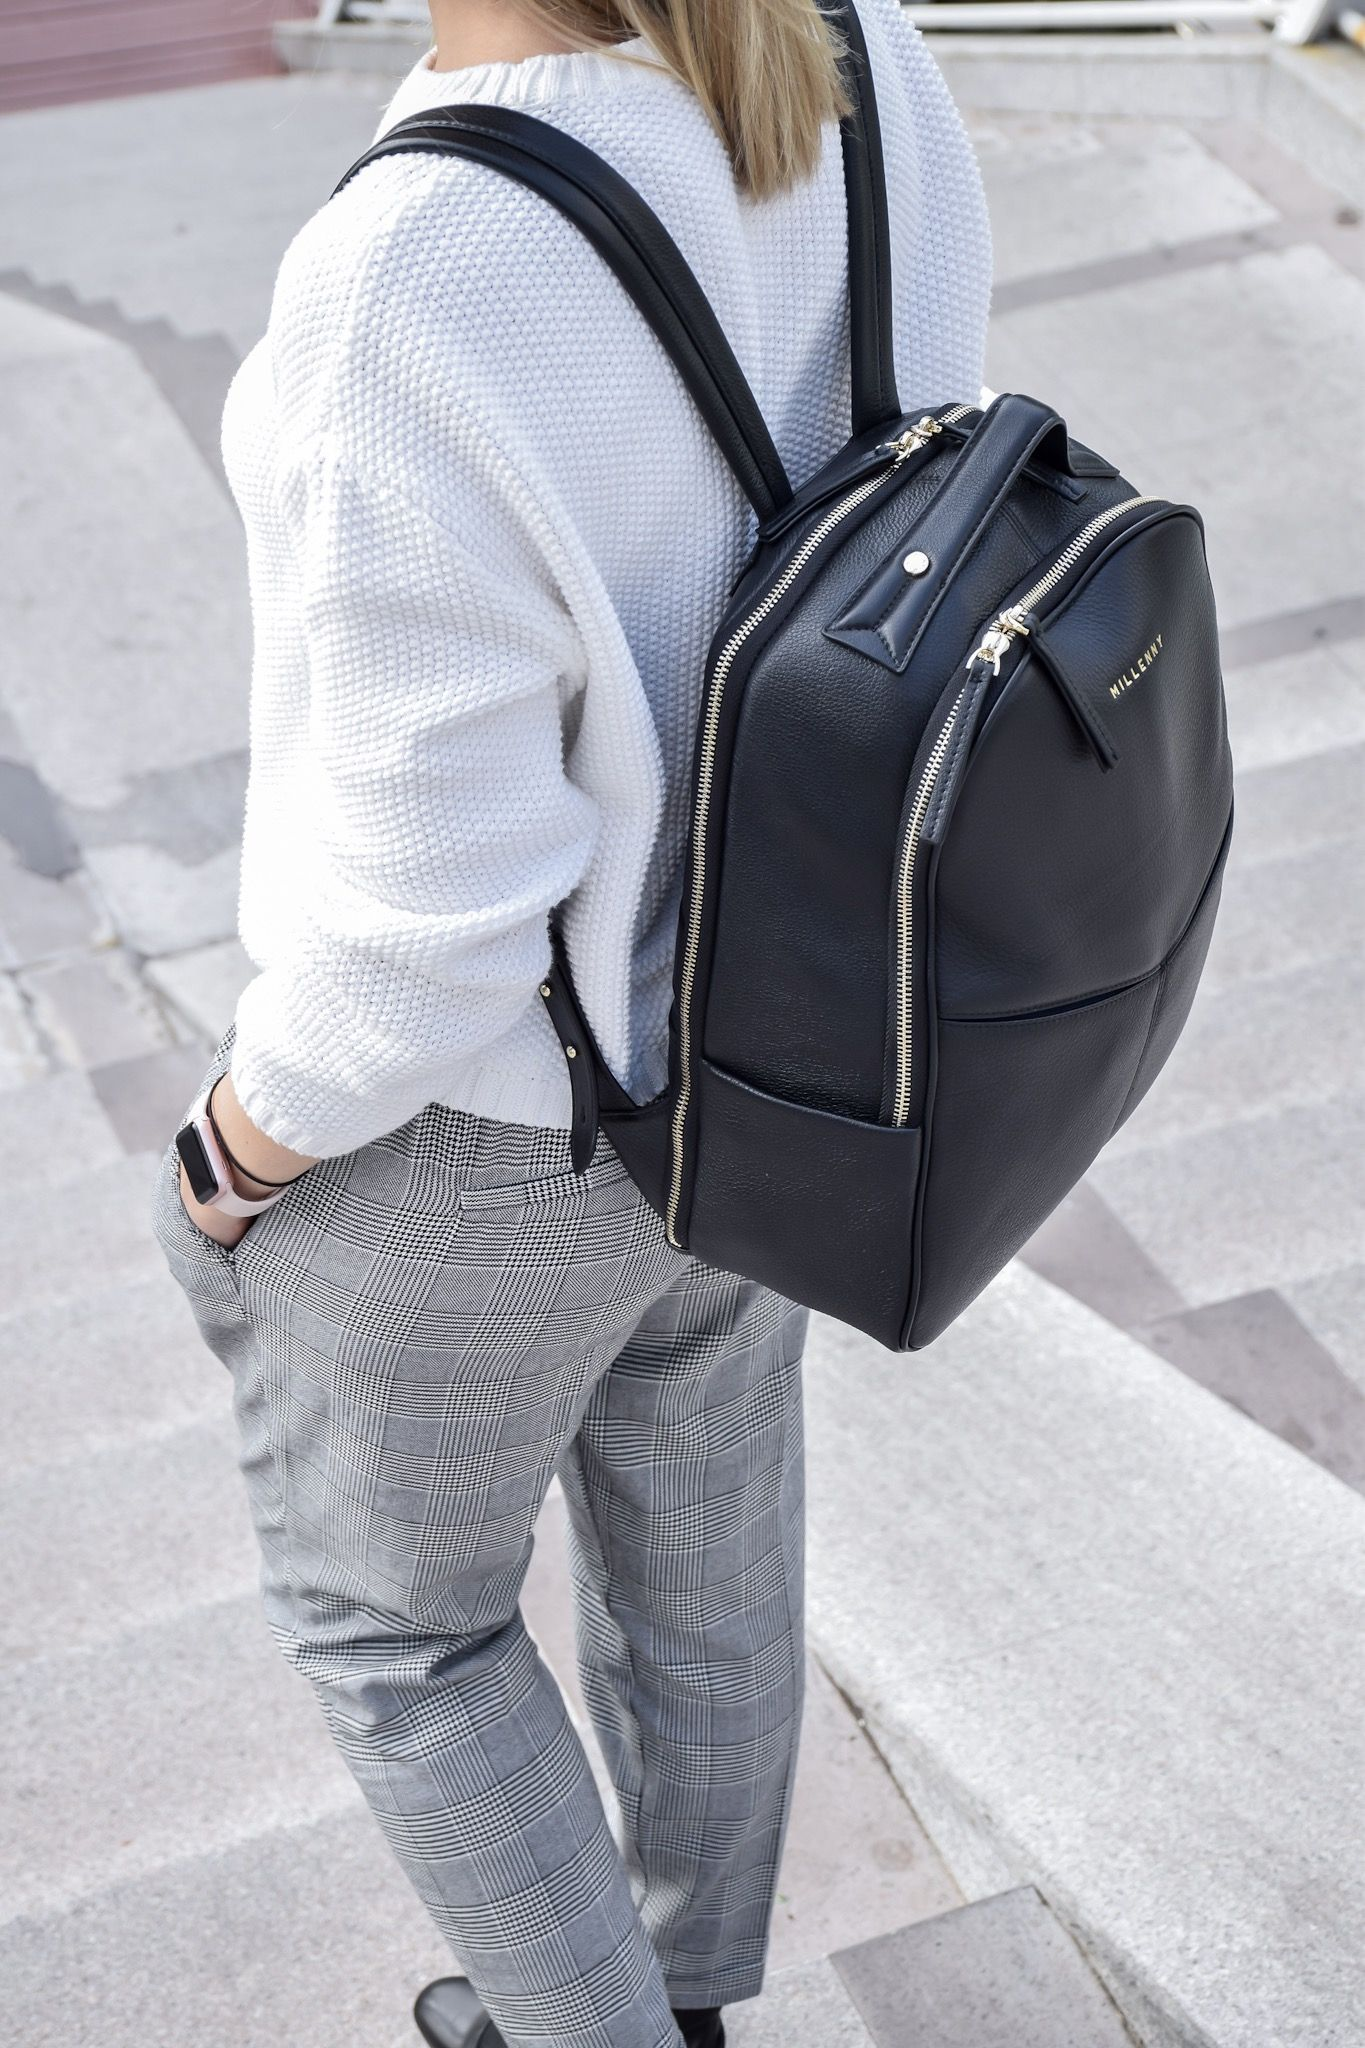 BISCAYNE Work Backpack | Stylish work bag, Sophisticated backpack, Work  backpack